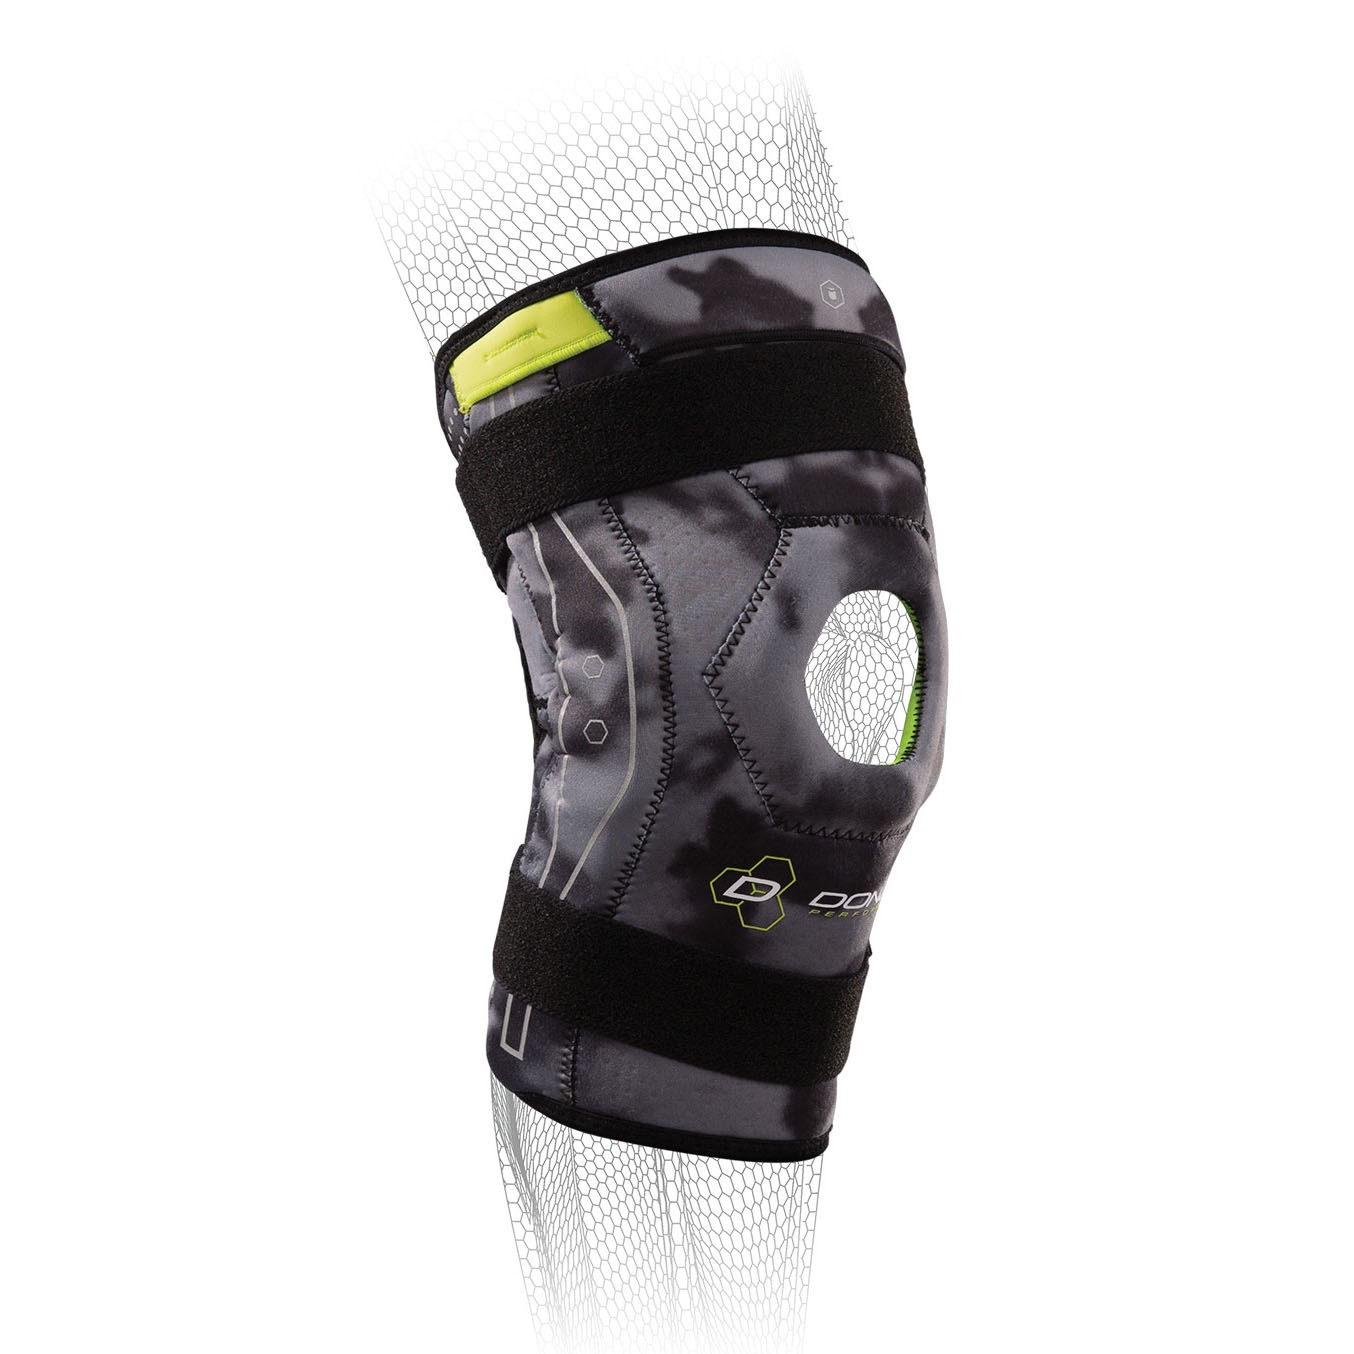 ce74cd3643 Bionic Knee Brace - Black. Previous. DonJoy Performance Retail Packaging ...